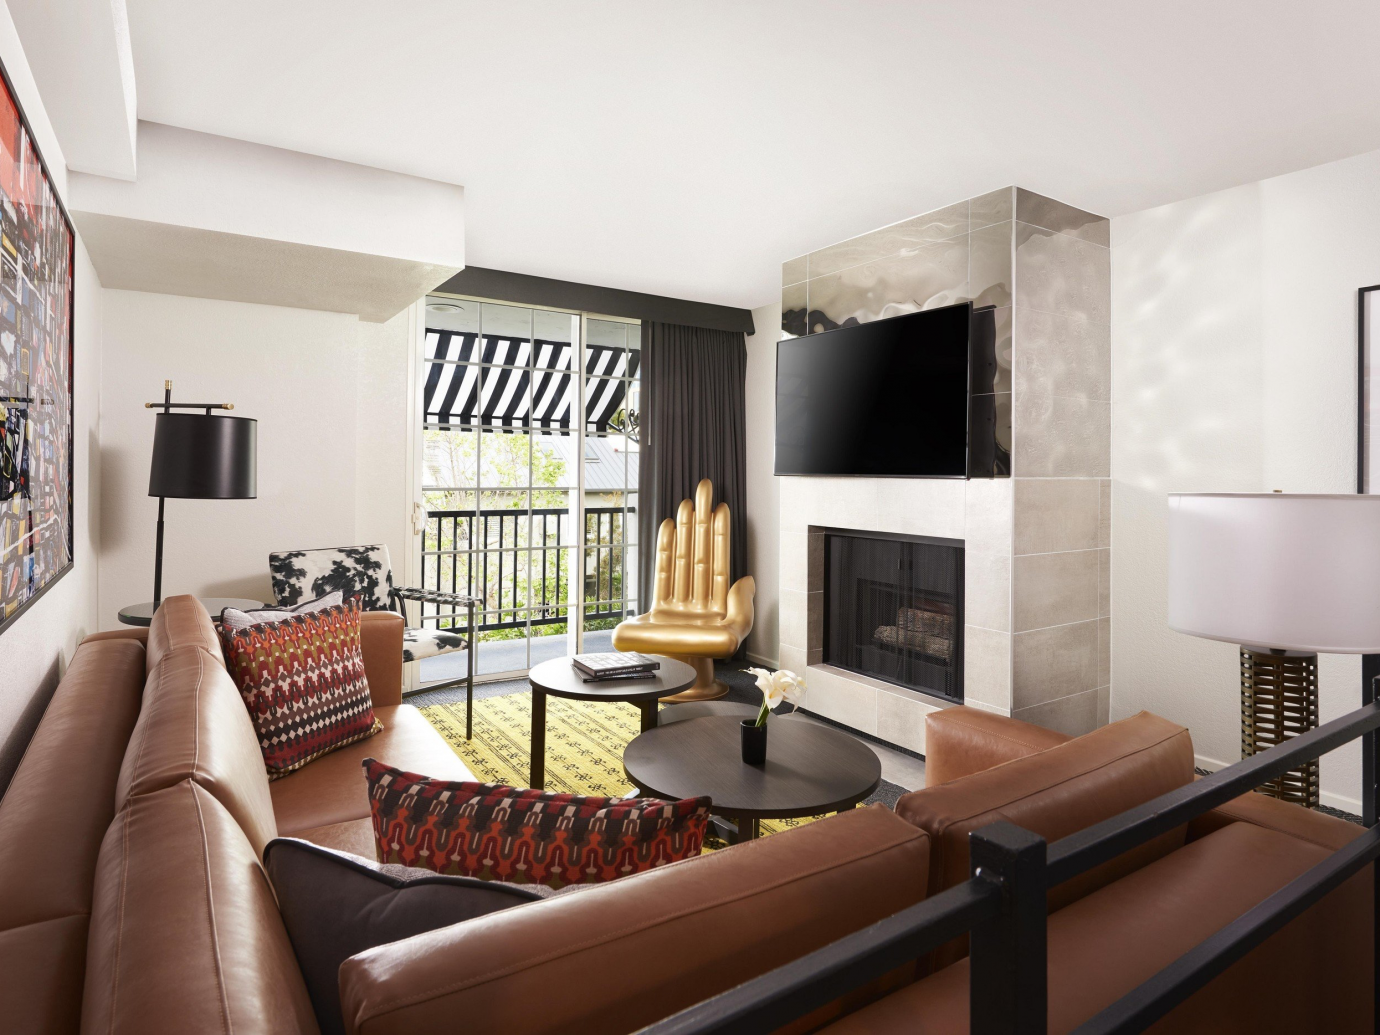 Interior living space at a suite Montrose